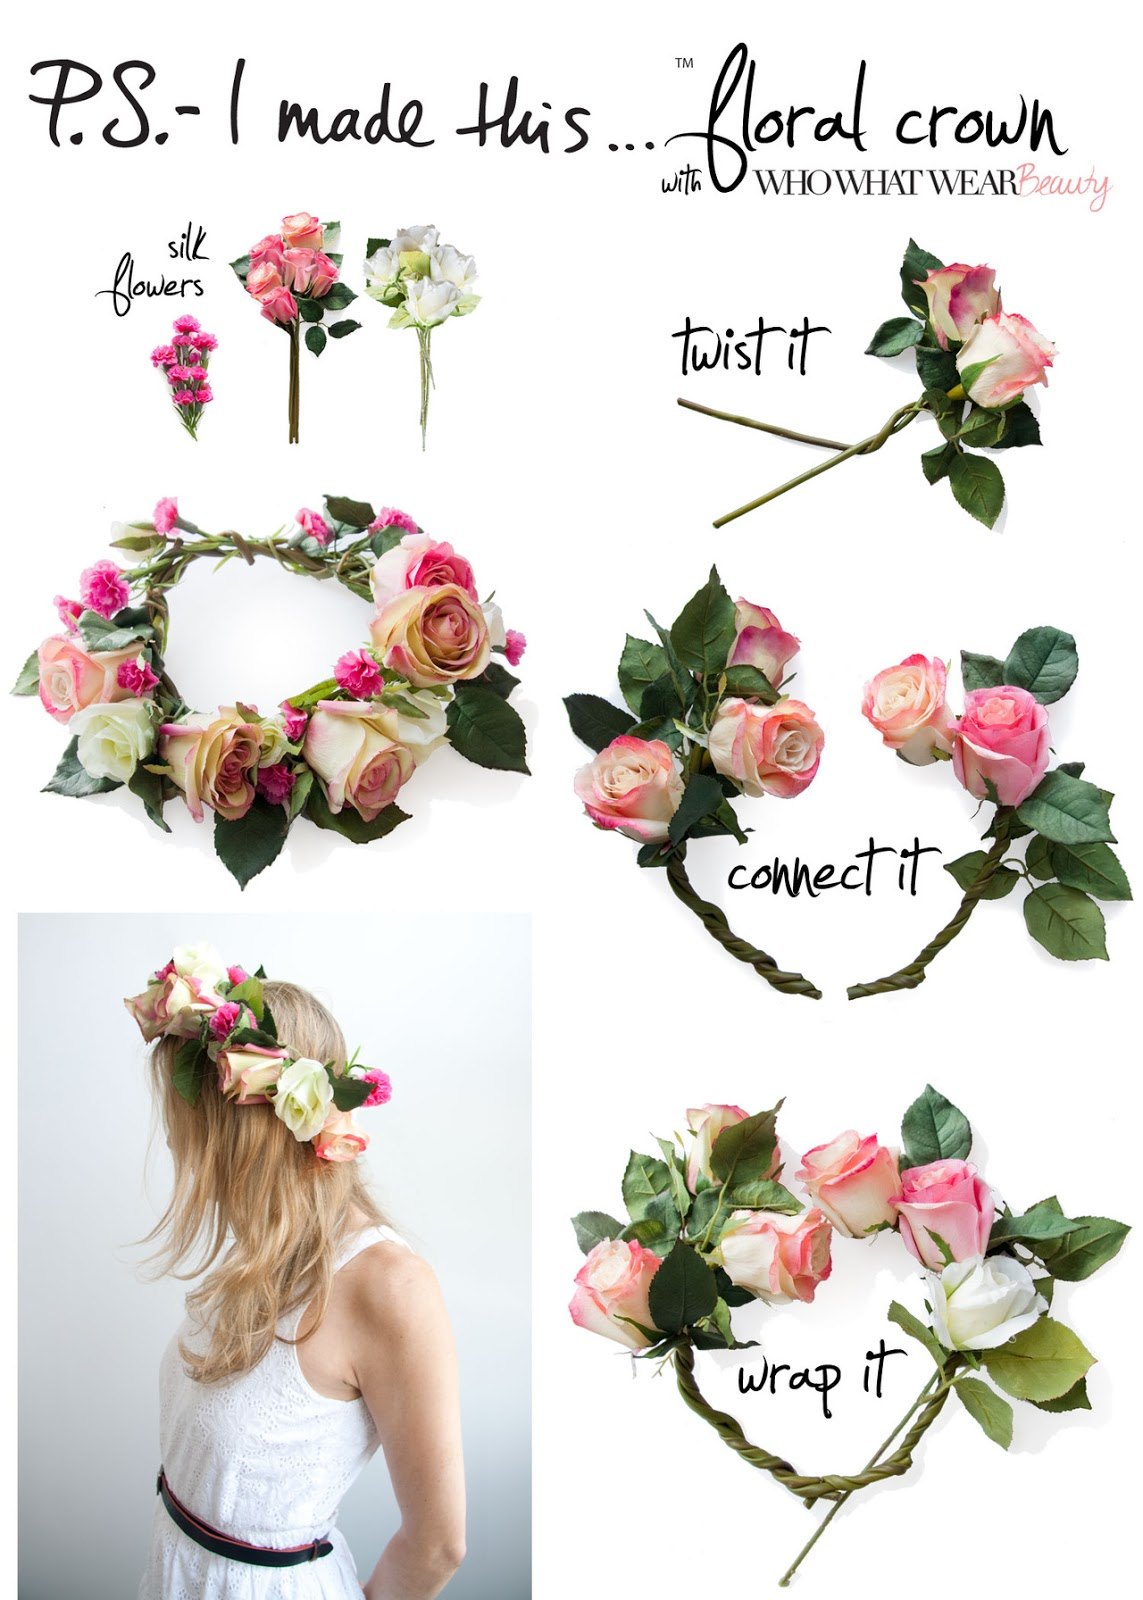 Flower crown quotes choice image flower wallpaper hd its a southern thing wedding thursday floral crown wedding thursday floral crown izmirmasajfo izmirmasajfo